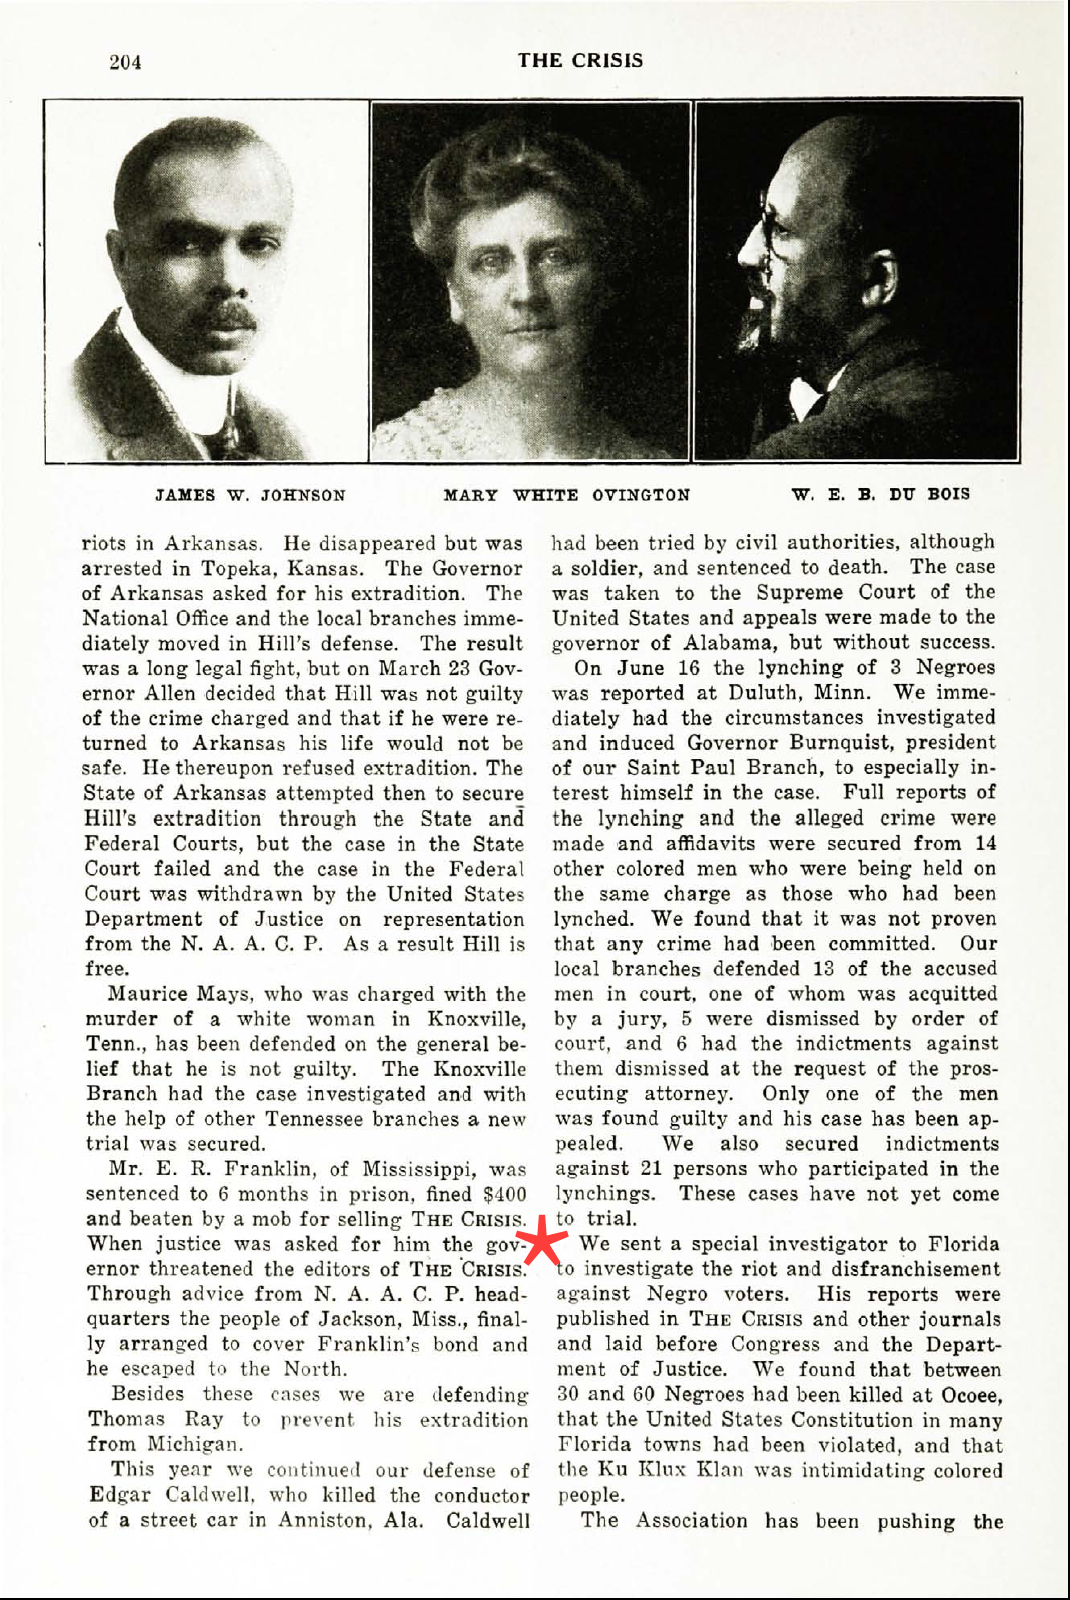 The Crisis, March 1921.